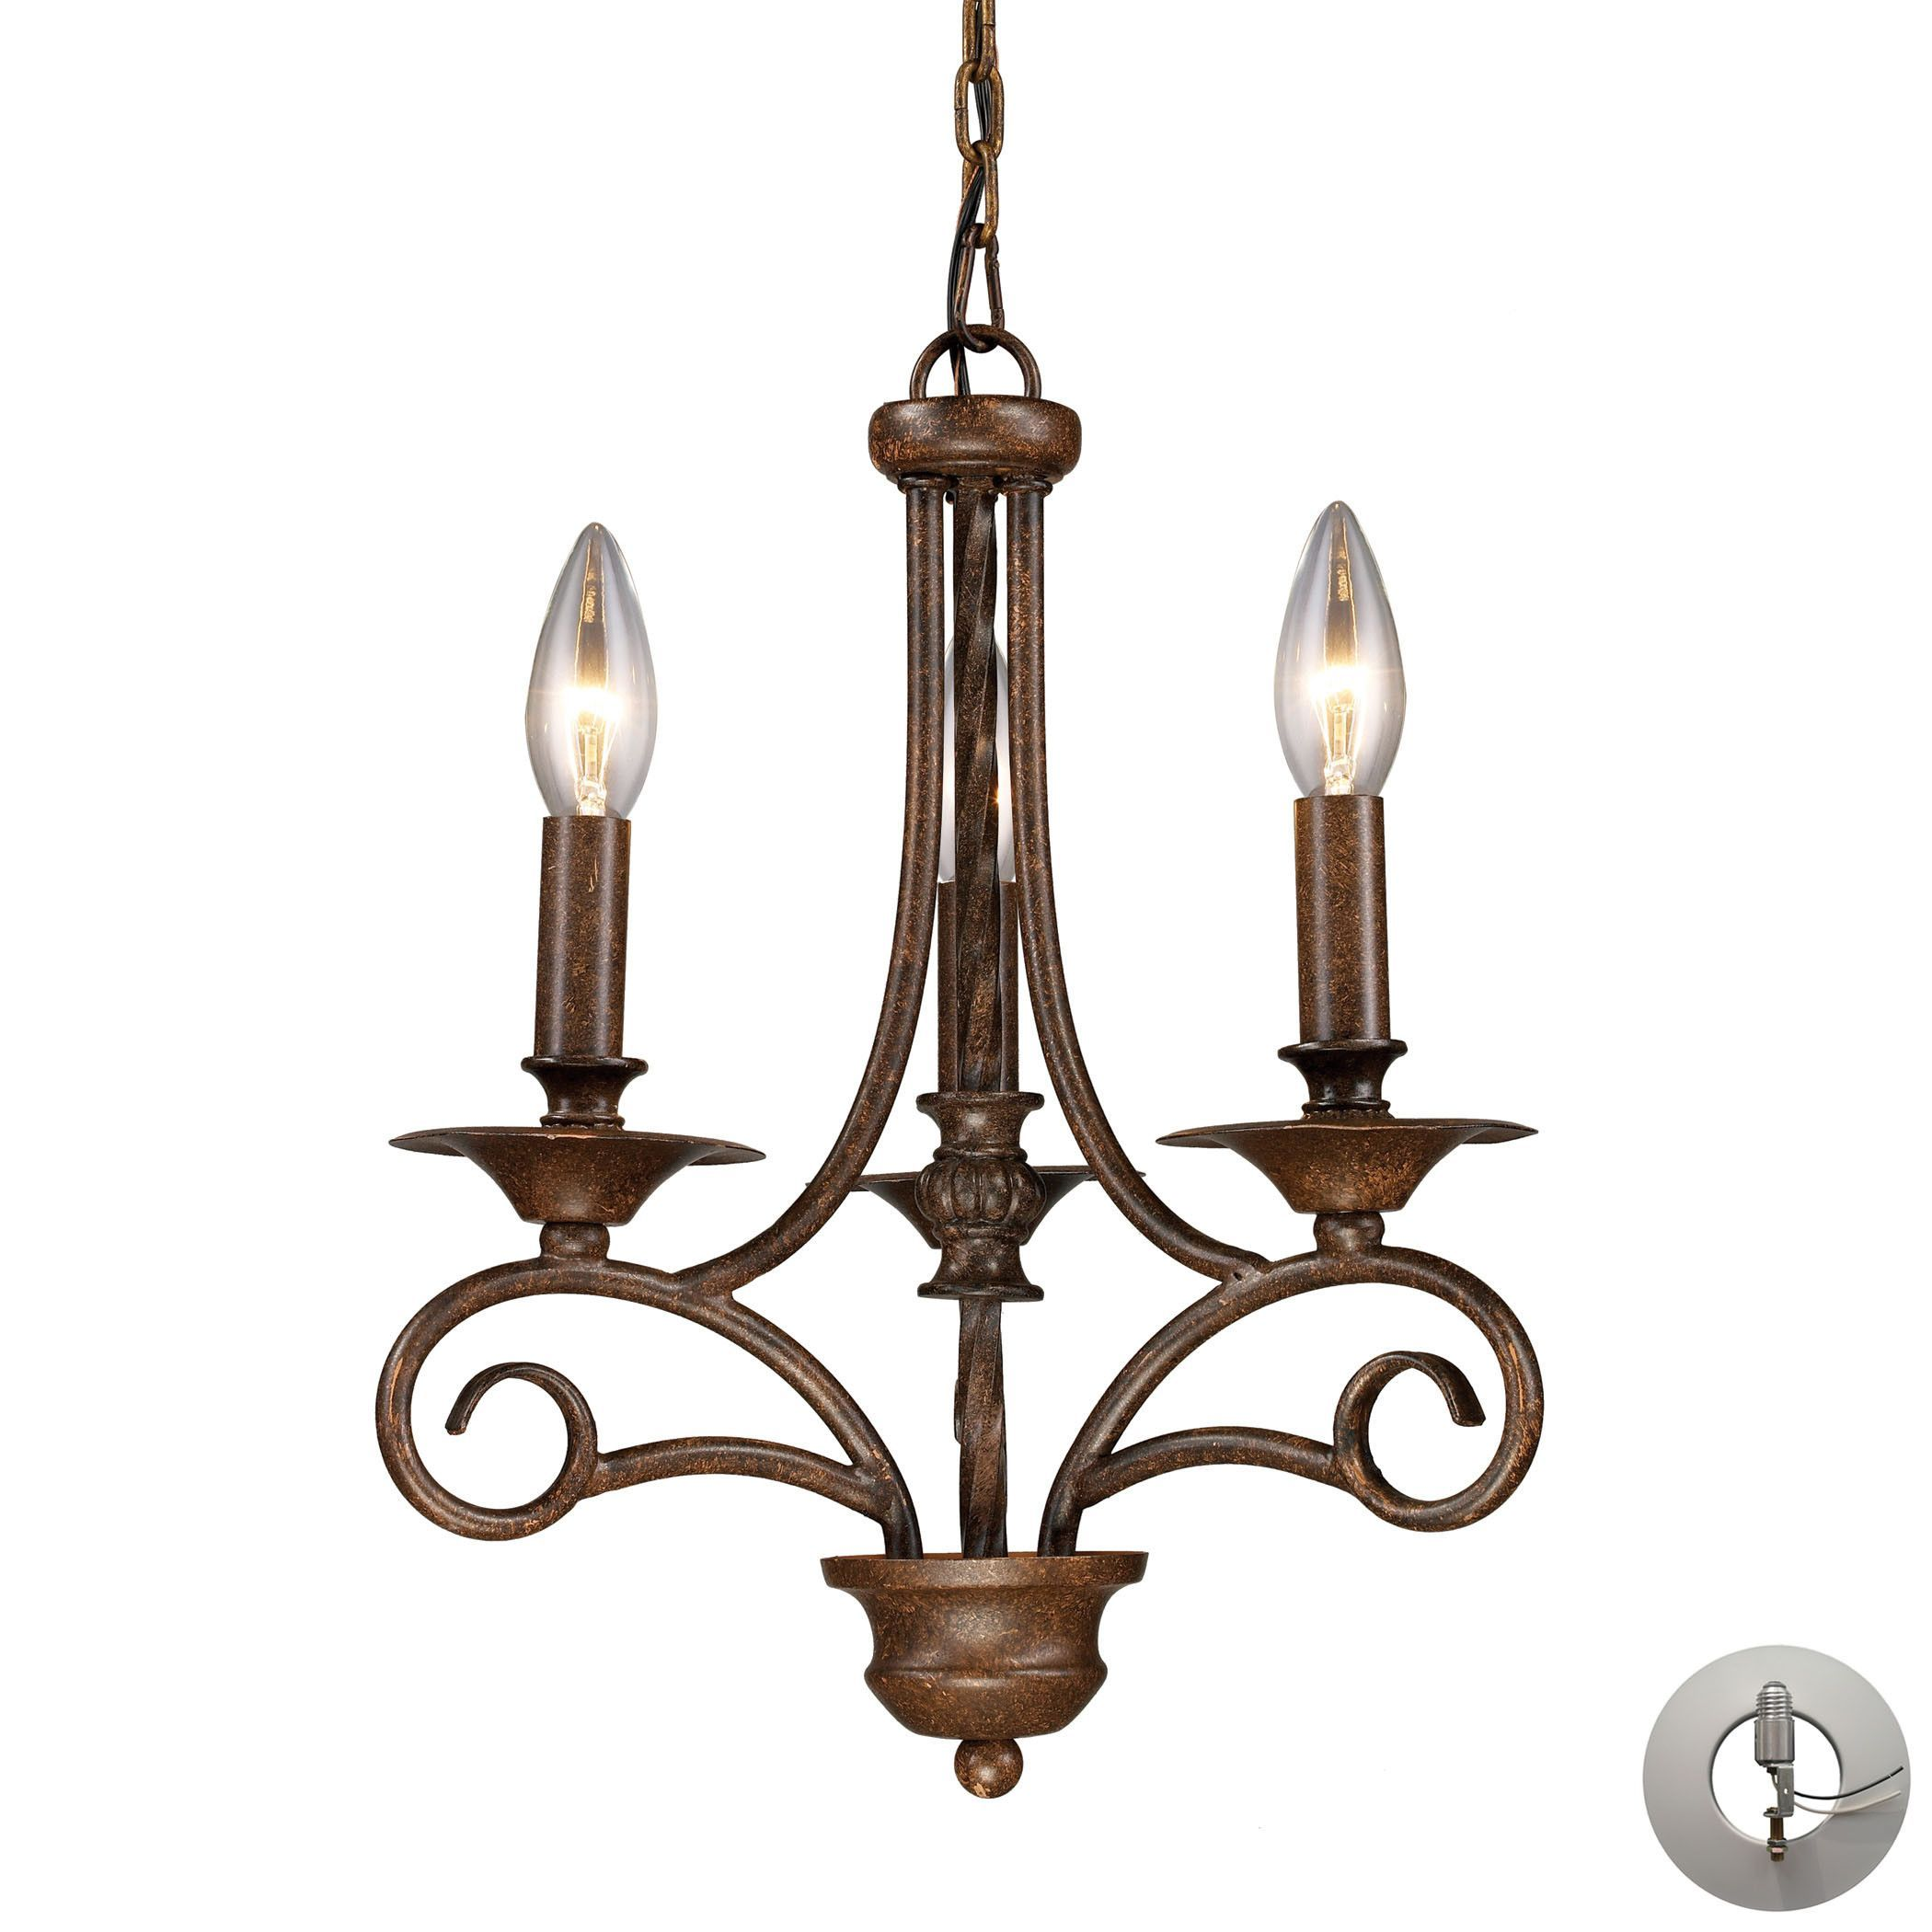 Gloucester 3 light chandelier in weathered bronze includes gloucester 3 light chandelier in weathered bronze includes recessed lighting kit arubaitofo Images